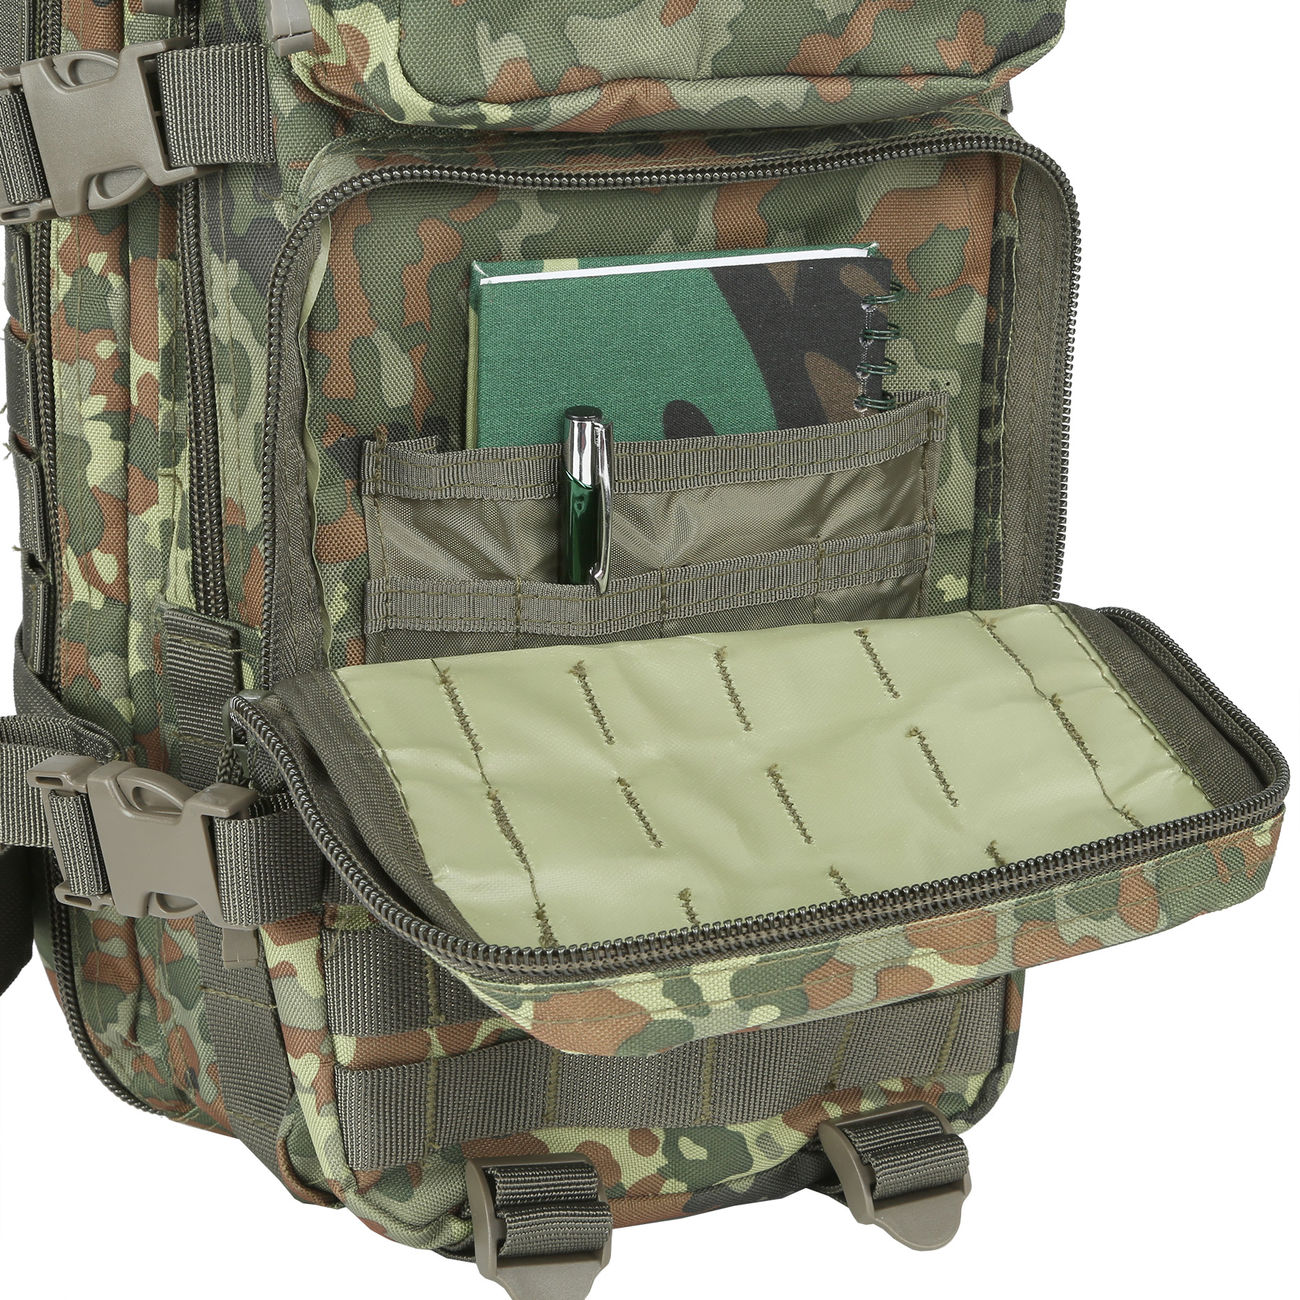 MFH Rucksack US Assault flecktarn 9